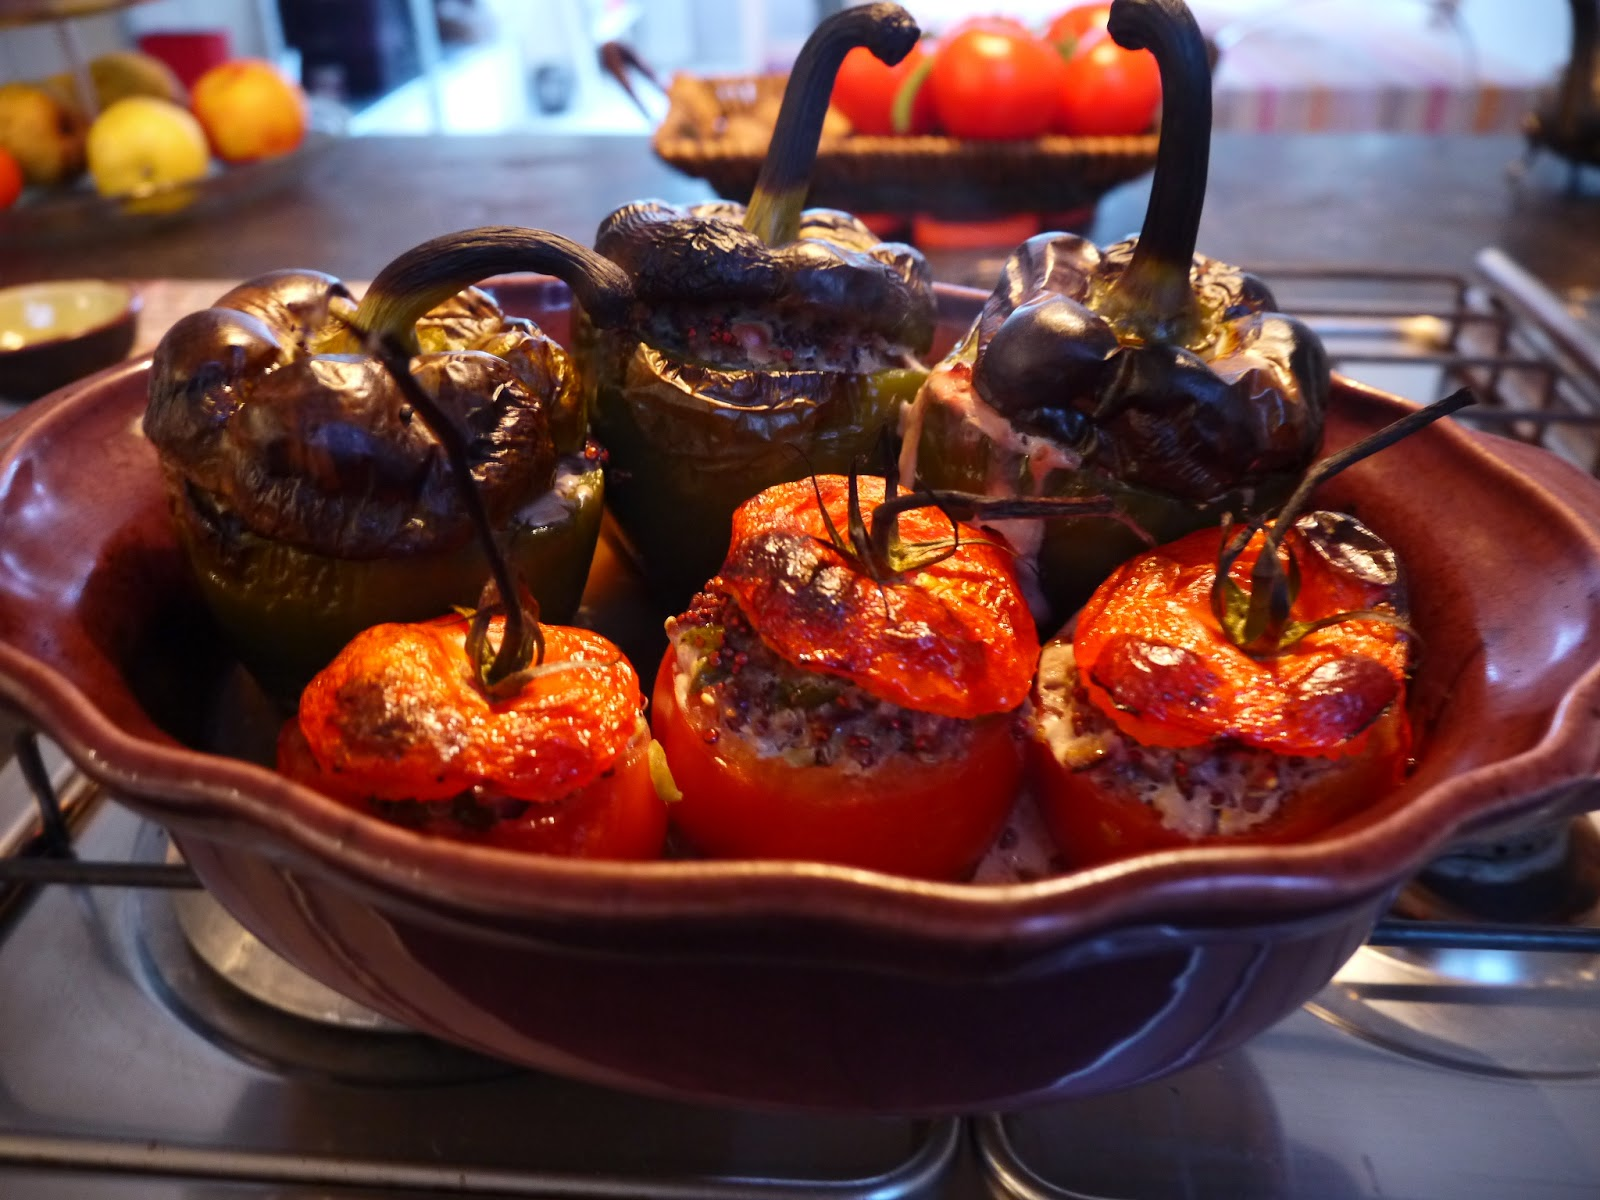 New age stuffed tomatoes by Appetit Voyage